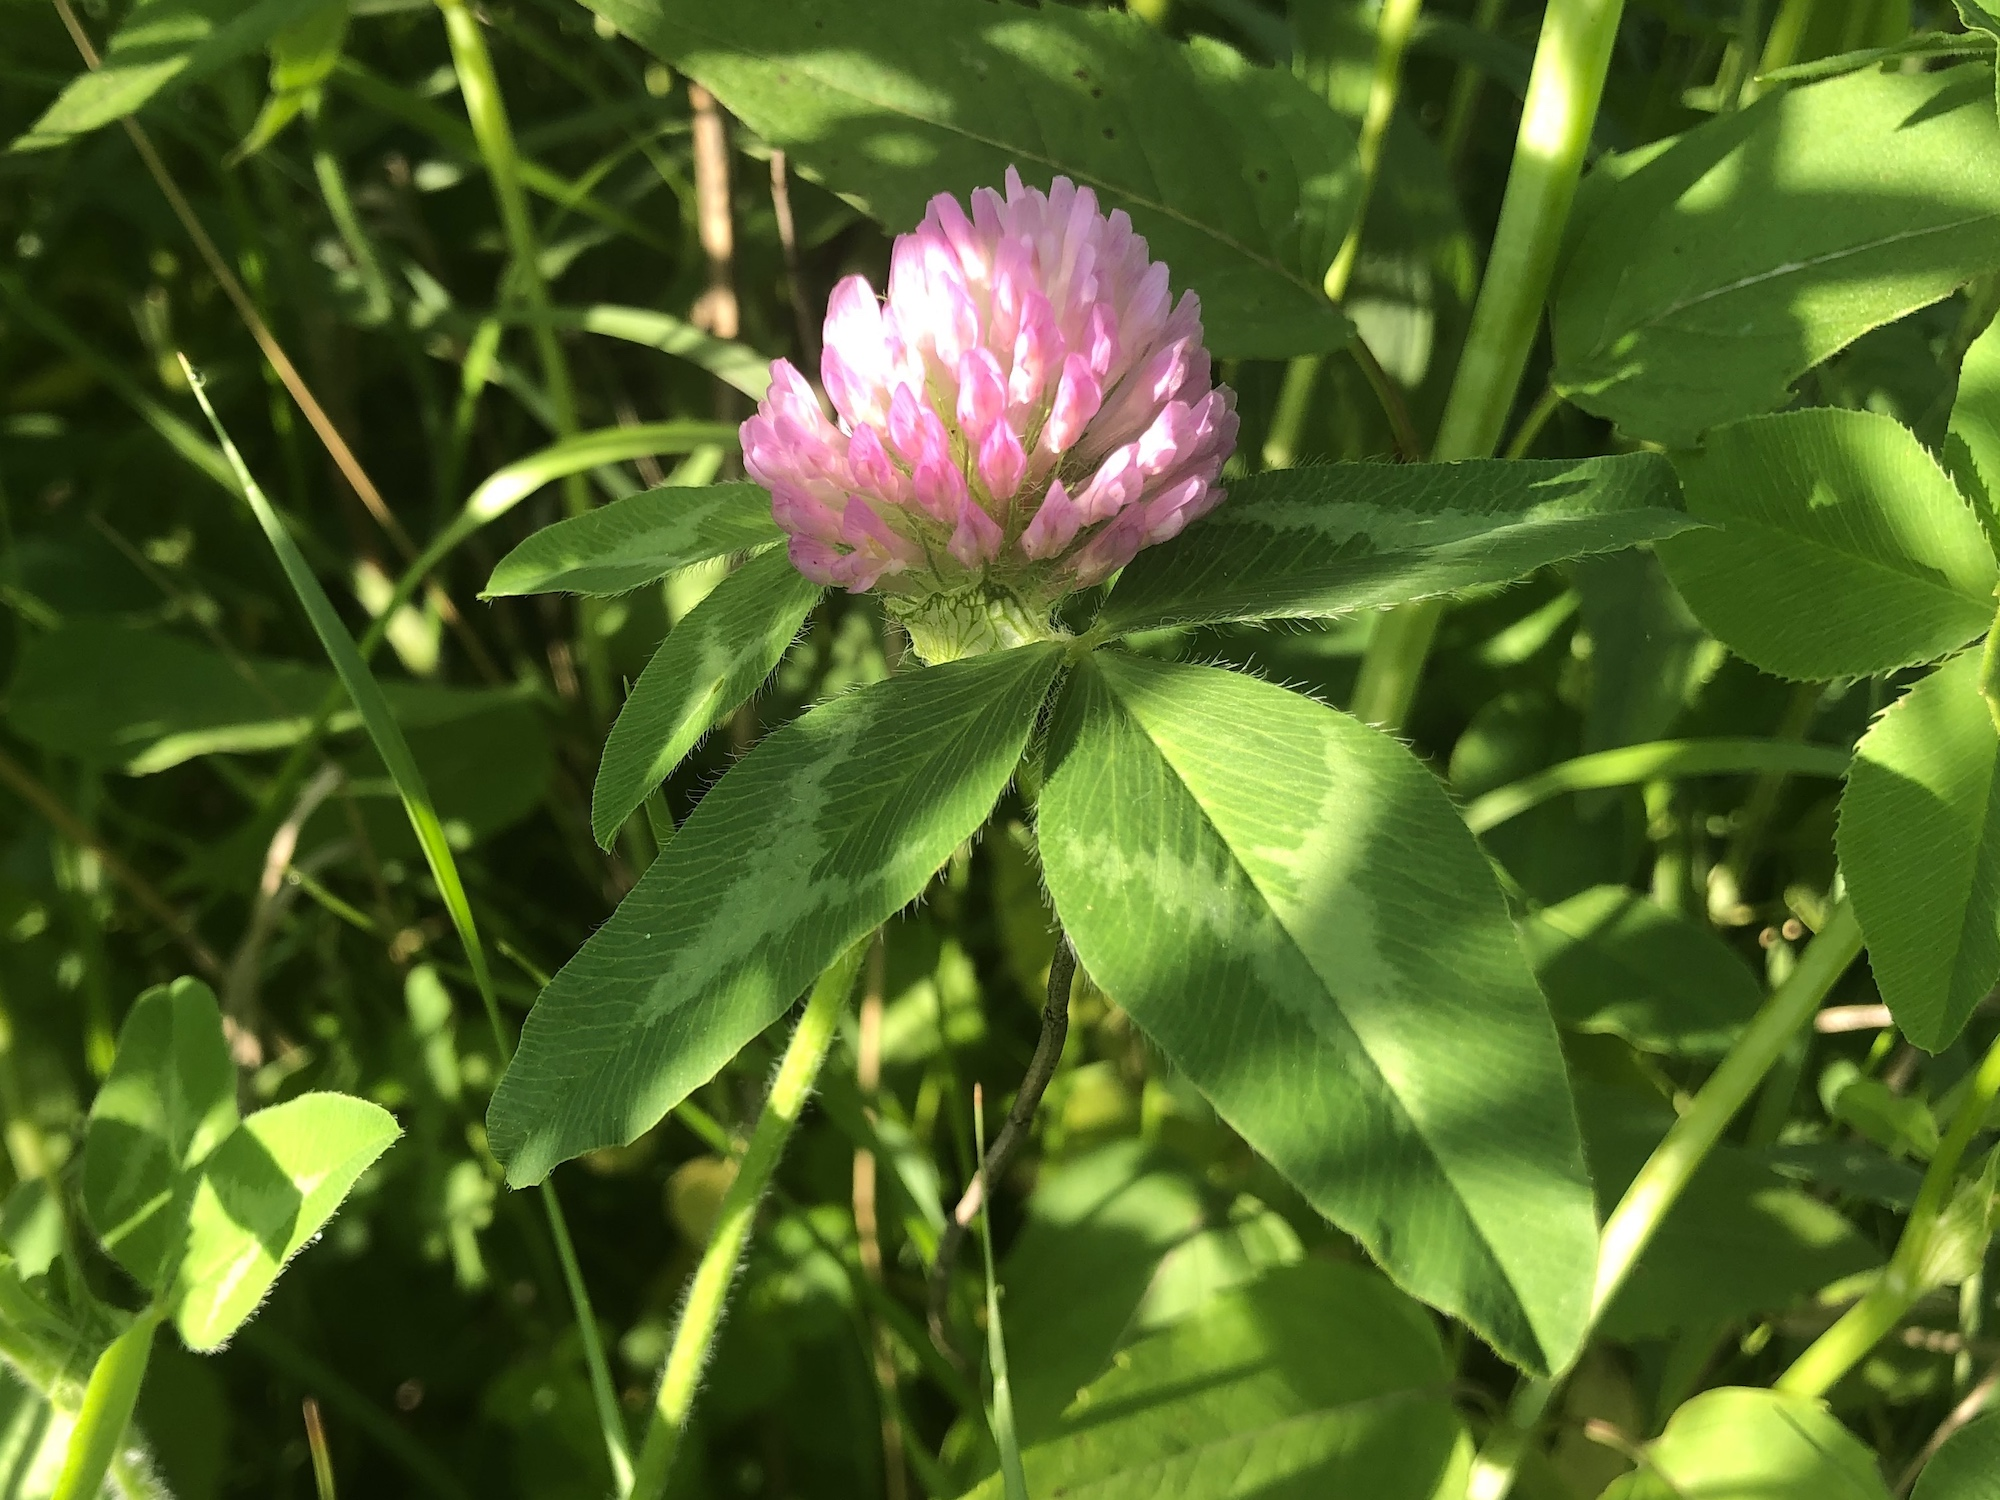 Red Clover on the bank of the retaining pond on June 4, 2020.